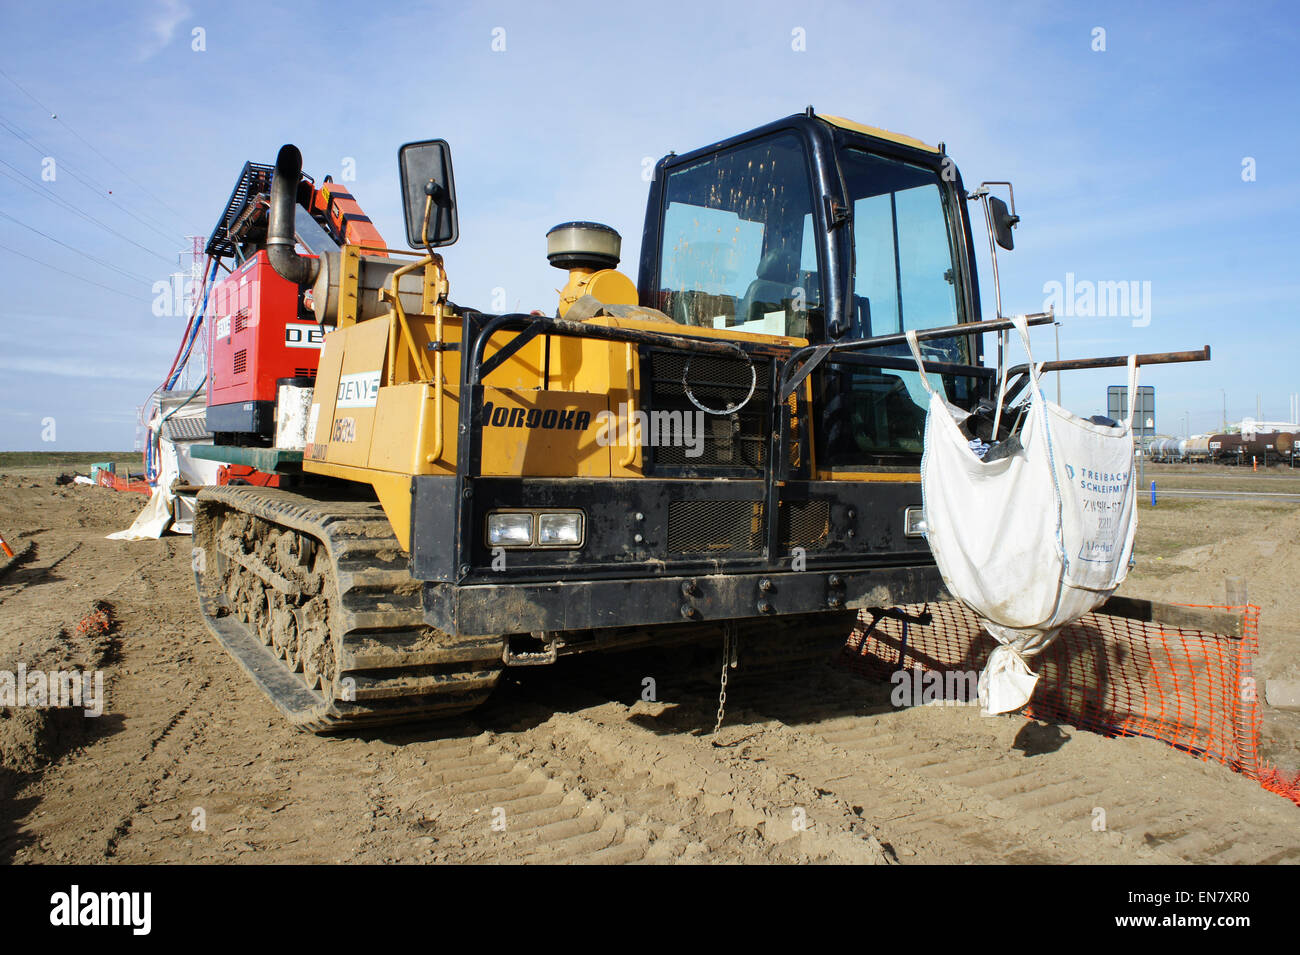 Morooka Rubber Track Carrier MST 2200VD, DENYS 05-314 pic1 - Stock Image